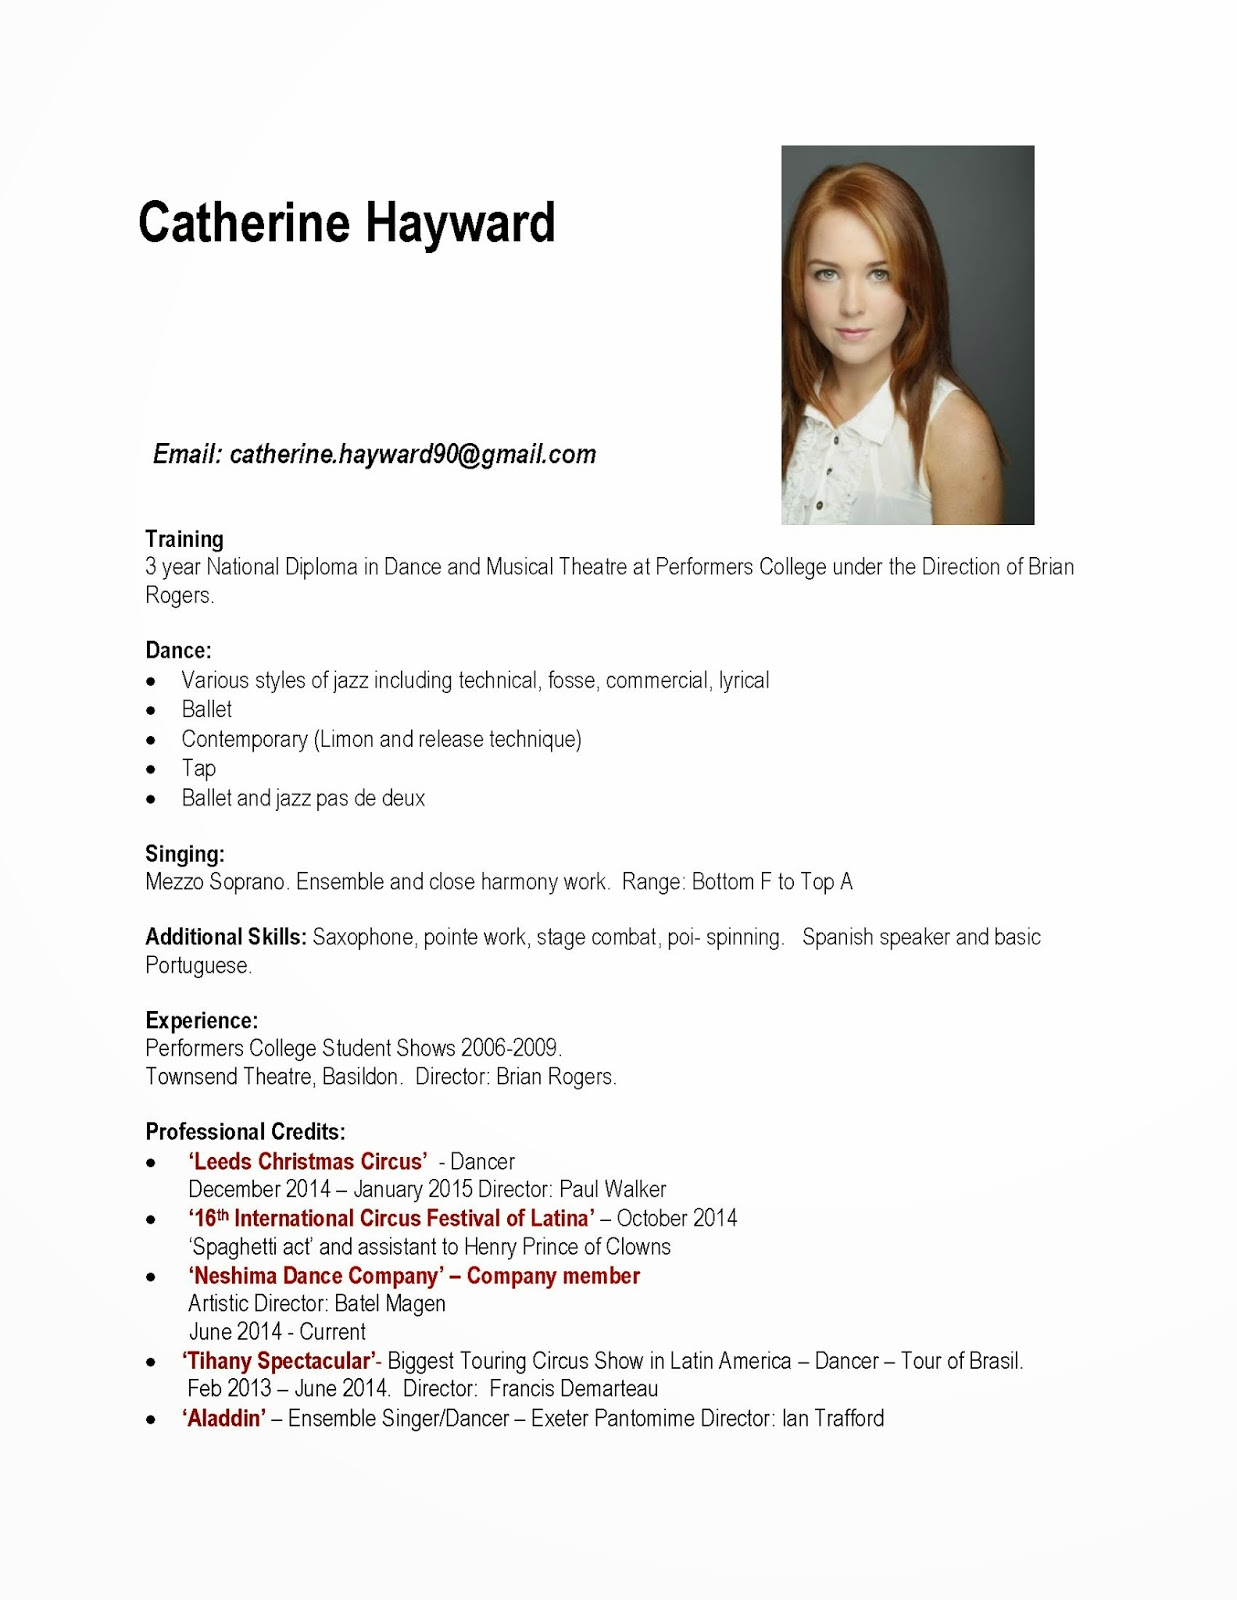 CHUNG RESUME CV REF Acting Resume Sample Free   Fax Cover Letter Example Resume are examples we  provide as reference